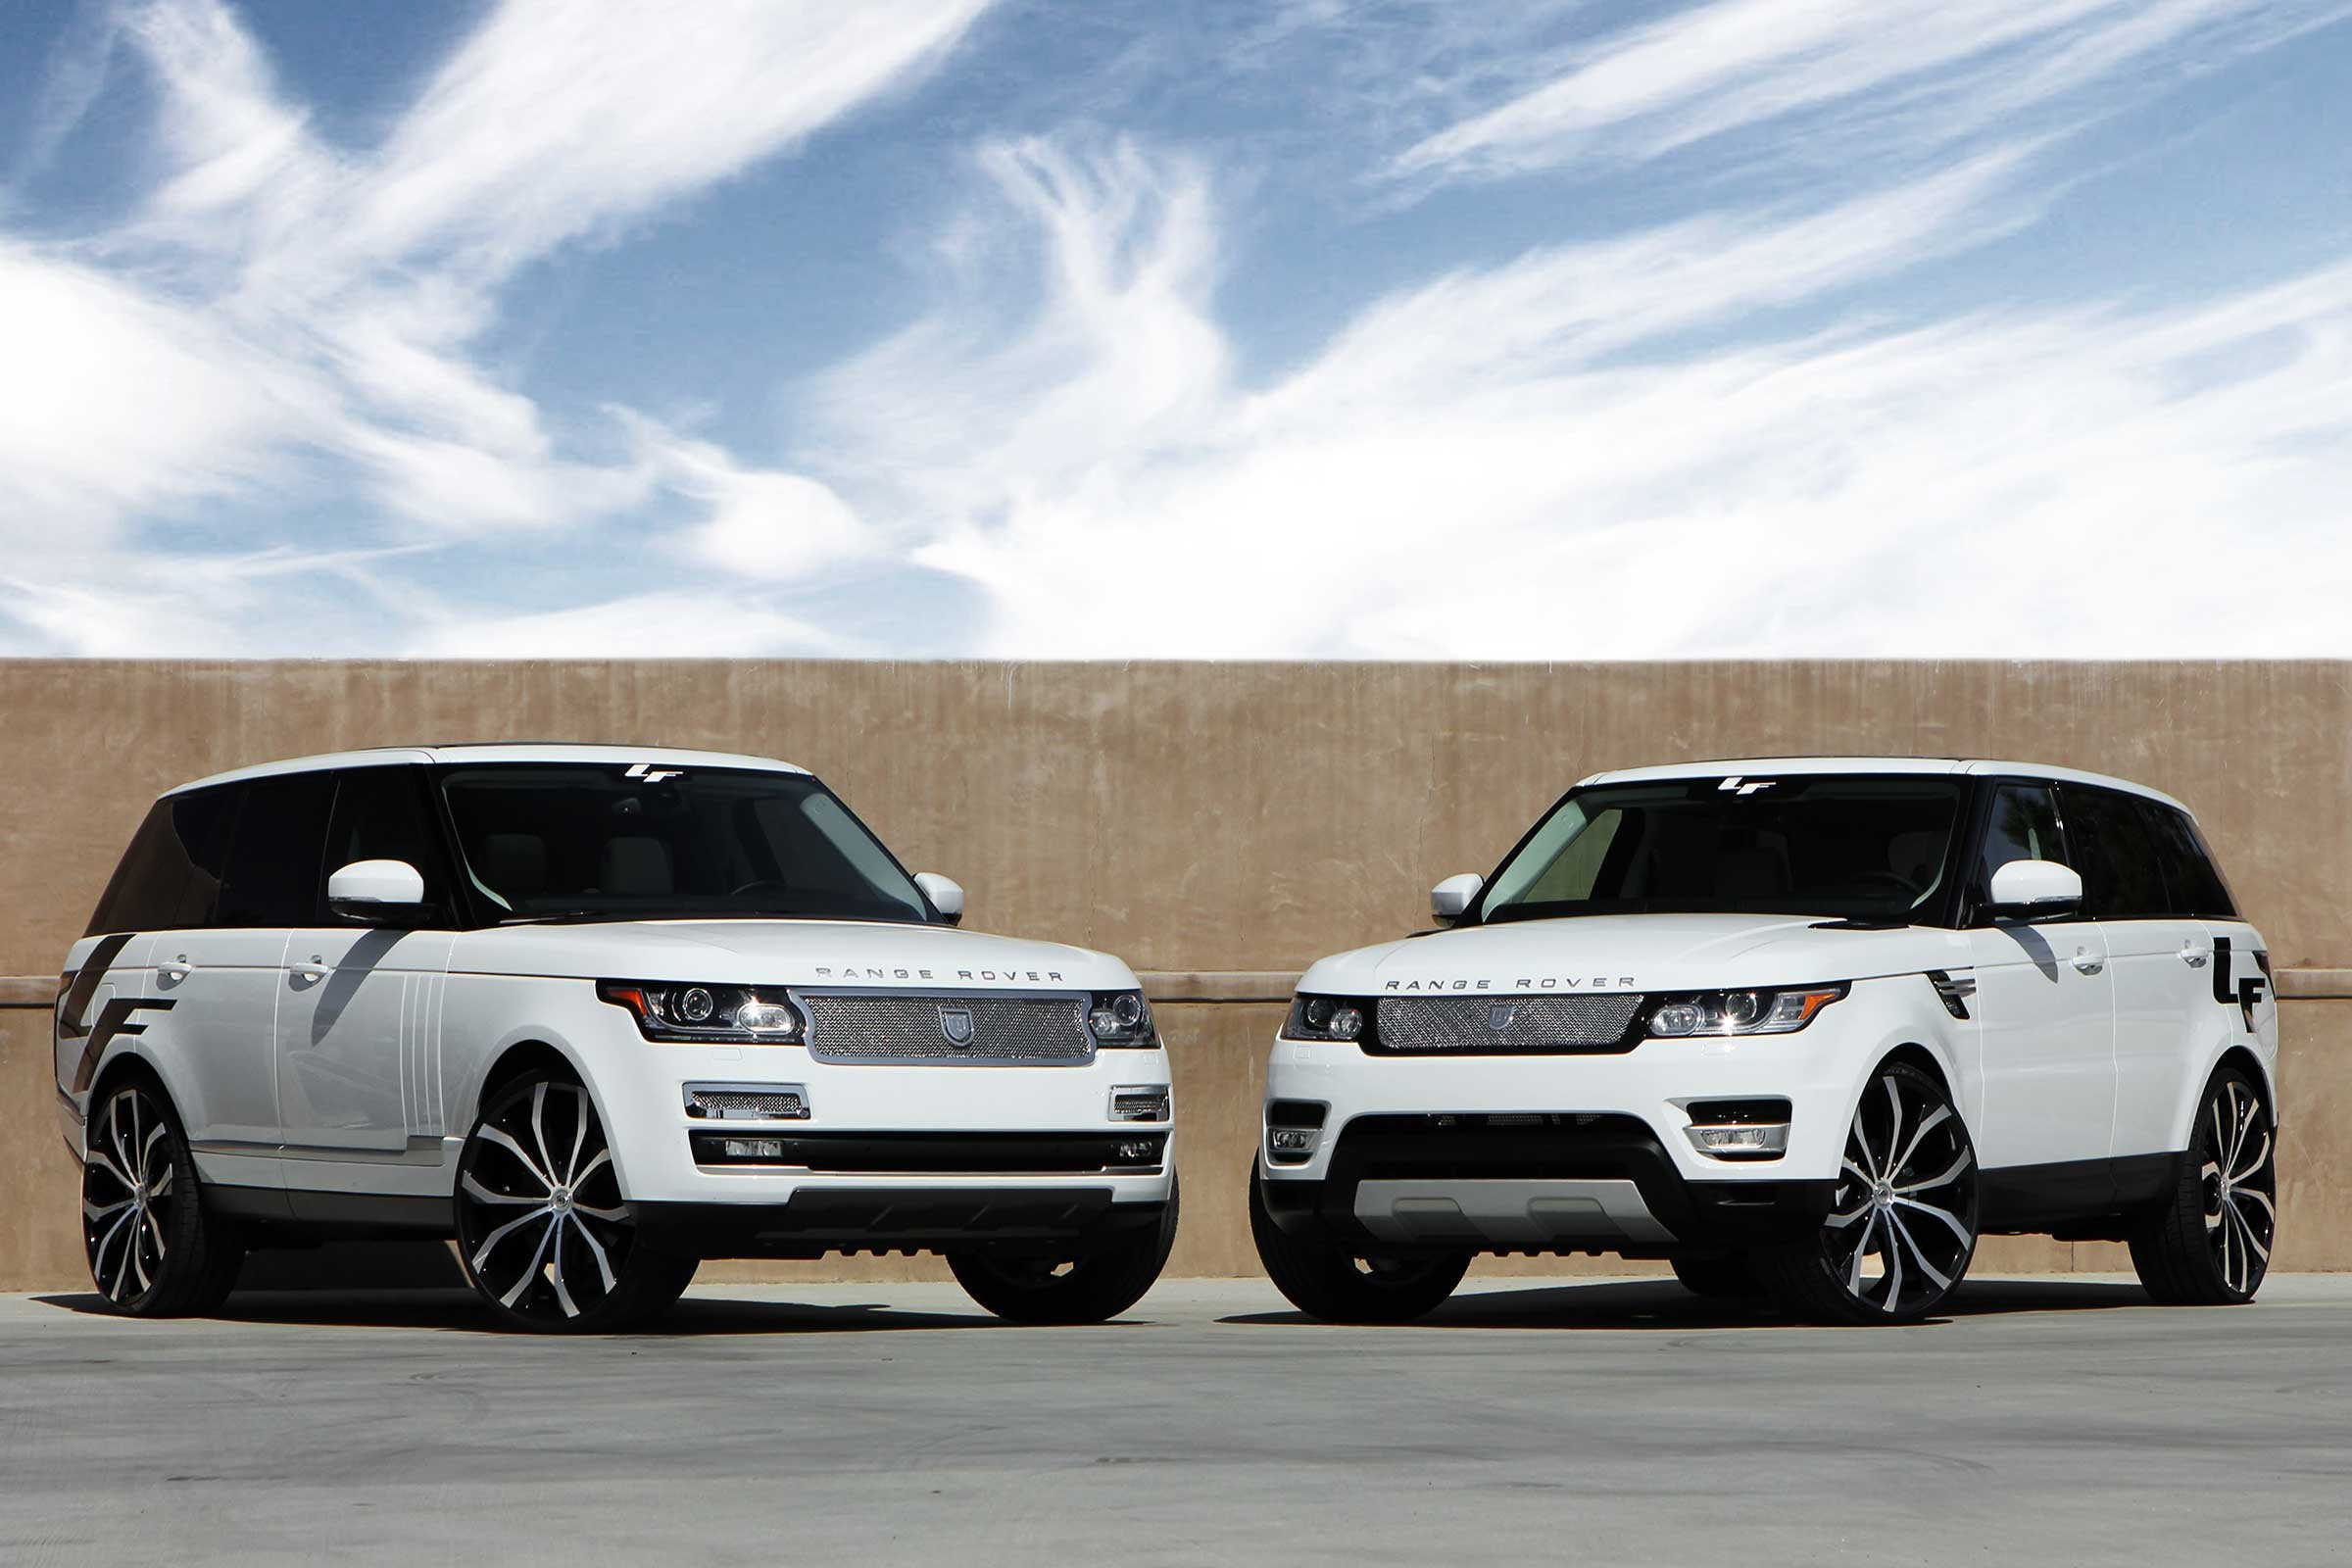 The 2014 Range Rover Sport, with 28